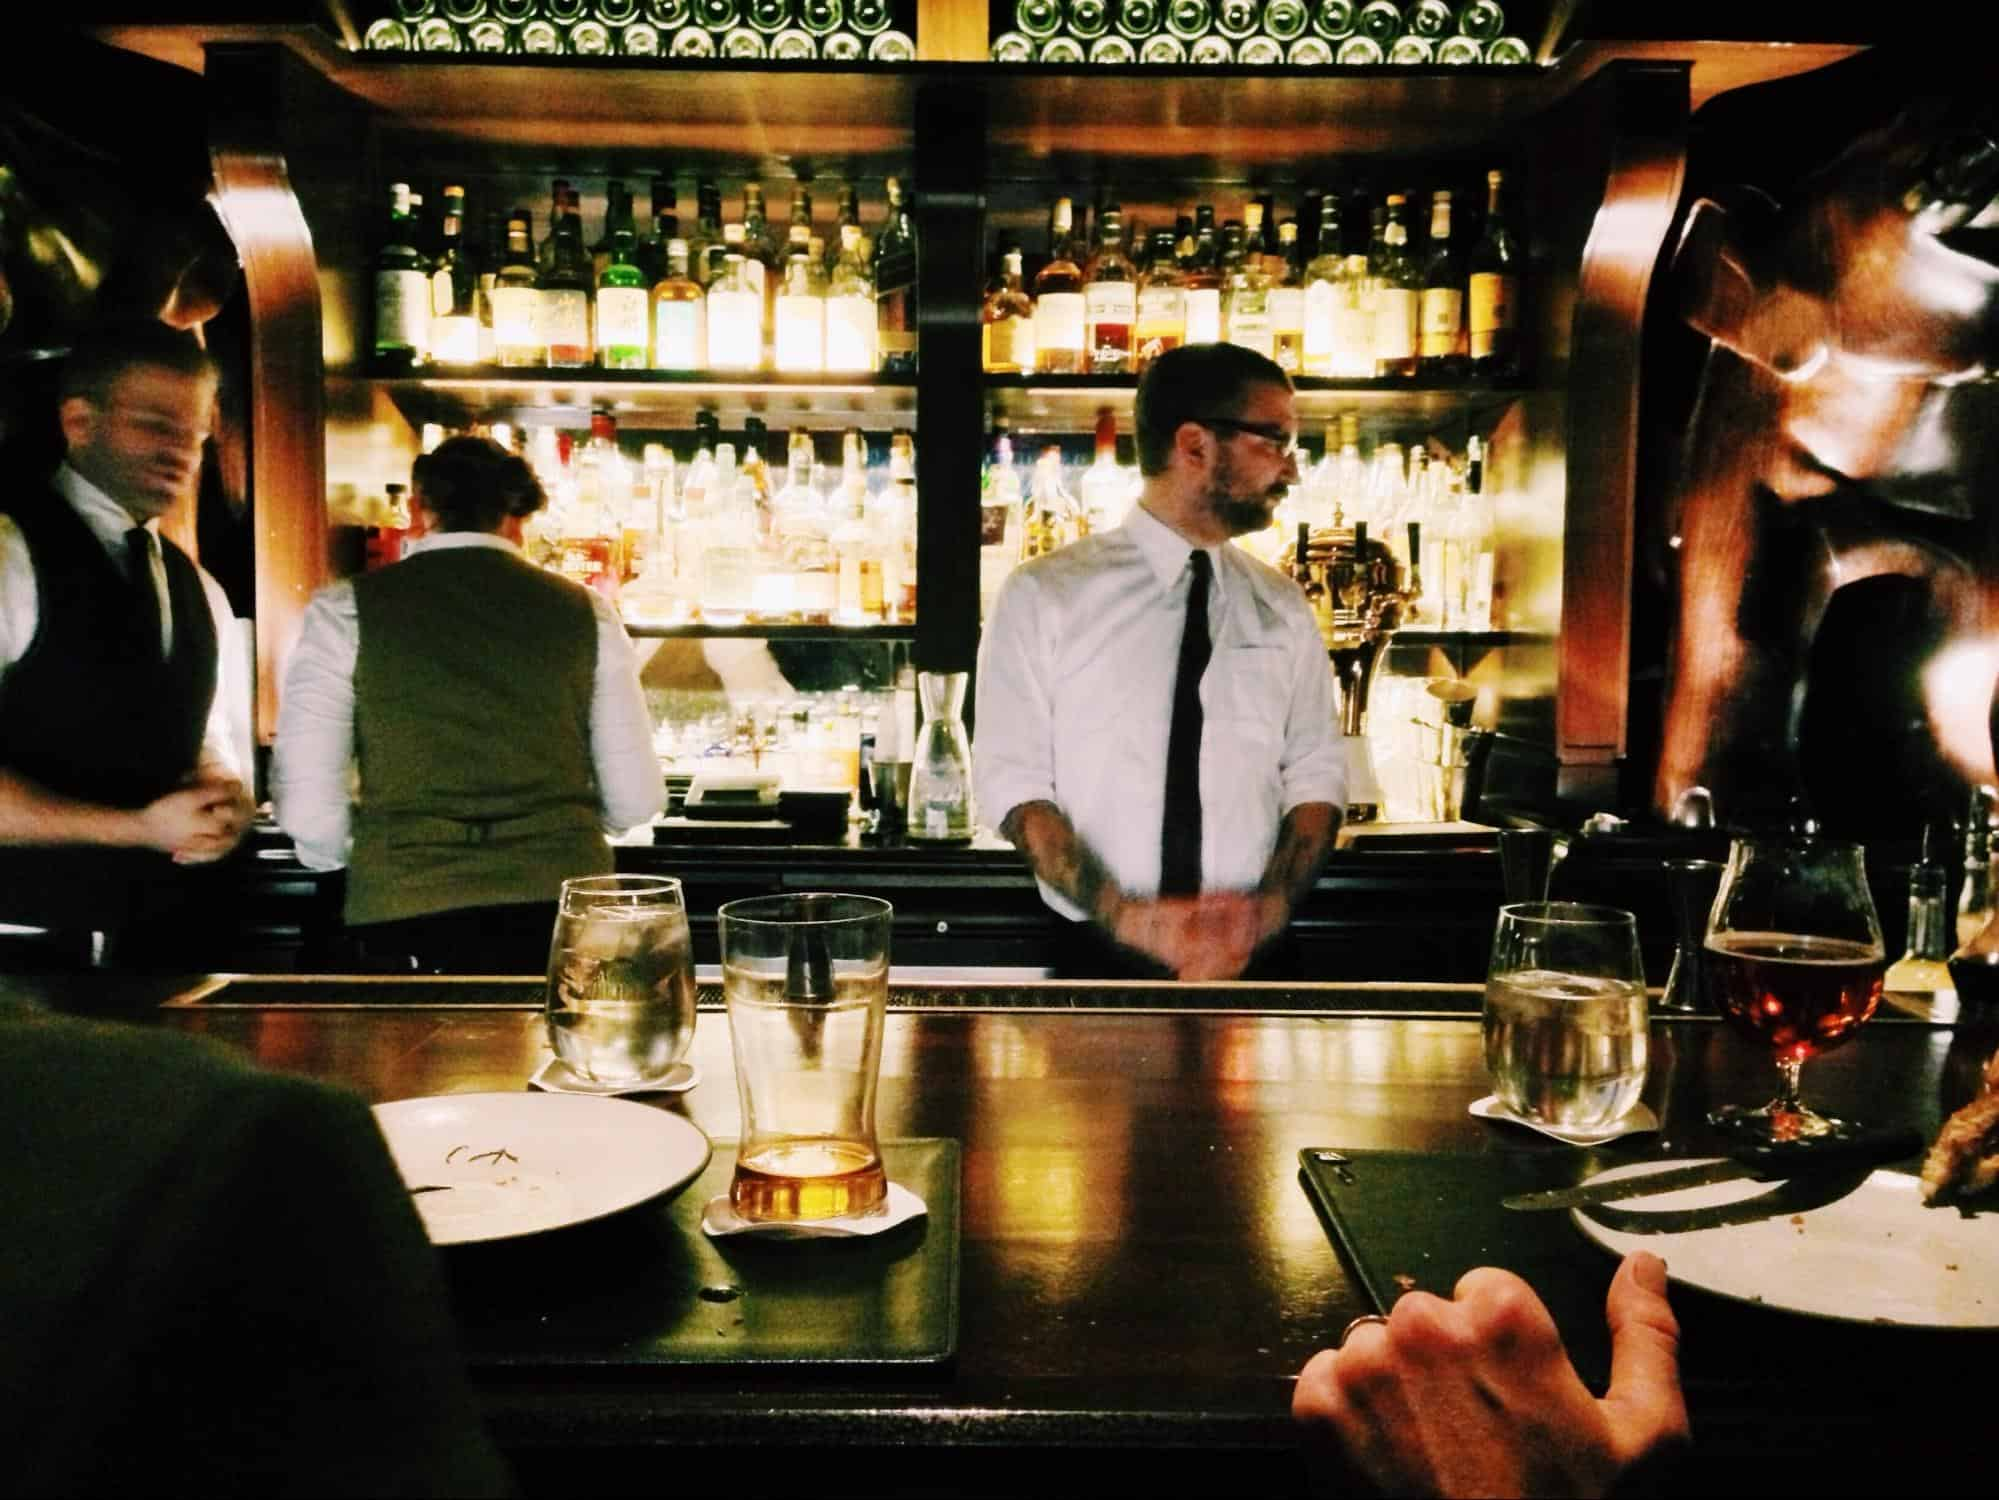 Man in front of bar